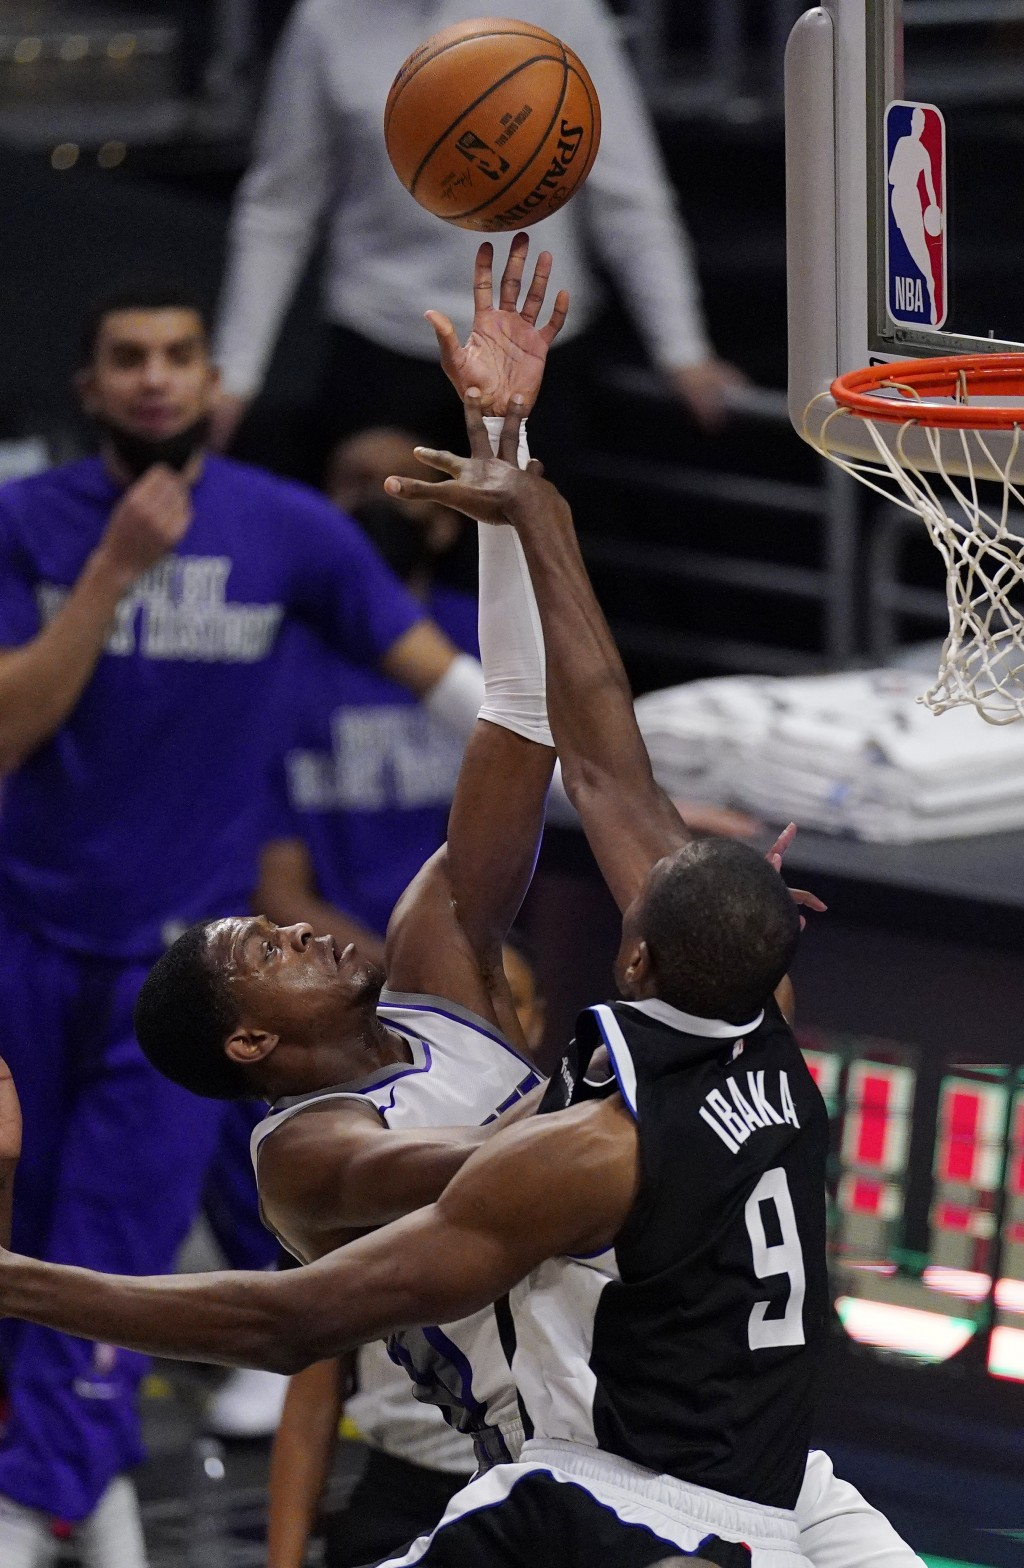 Sacramento Kings guard De'Aaron Fox, left, shoots as Los Angeles Clippers center Serge Ibaka defends during the first half of an NBA basketball game S...